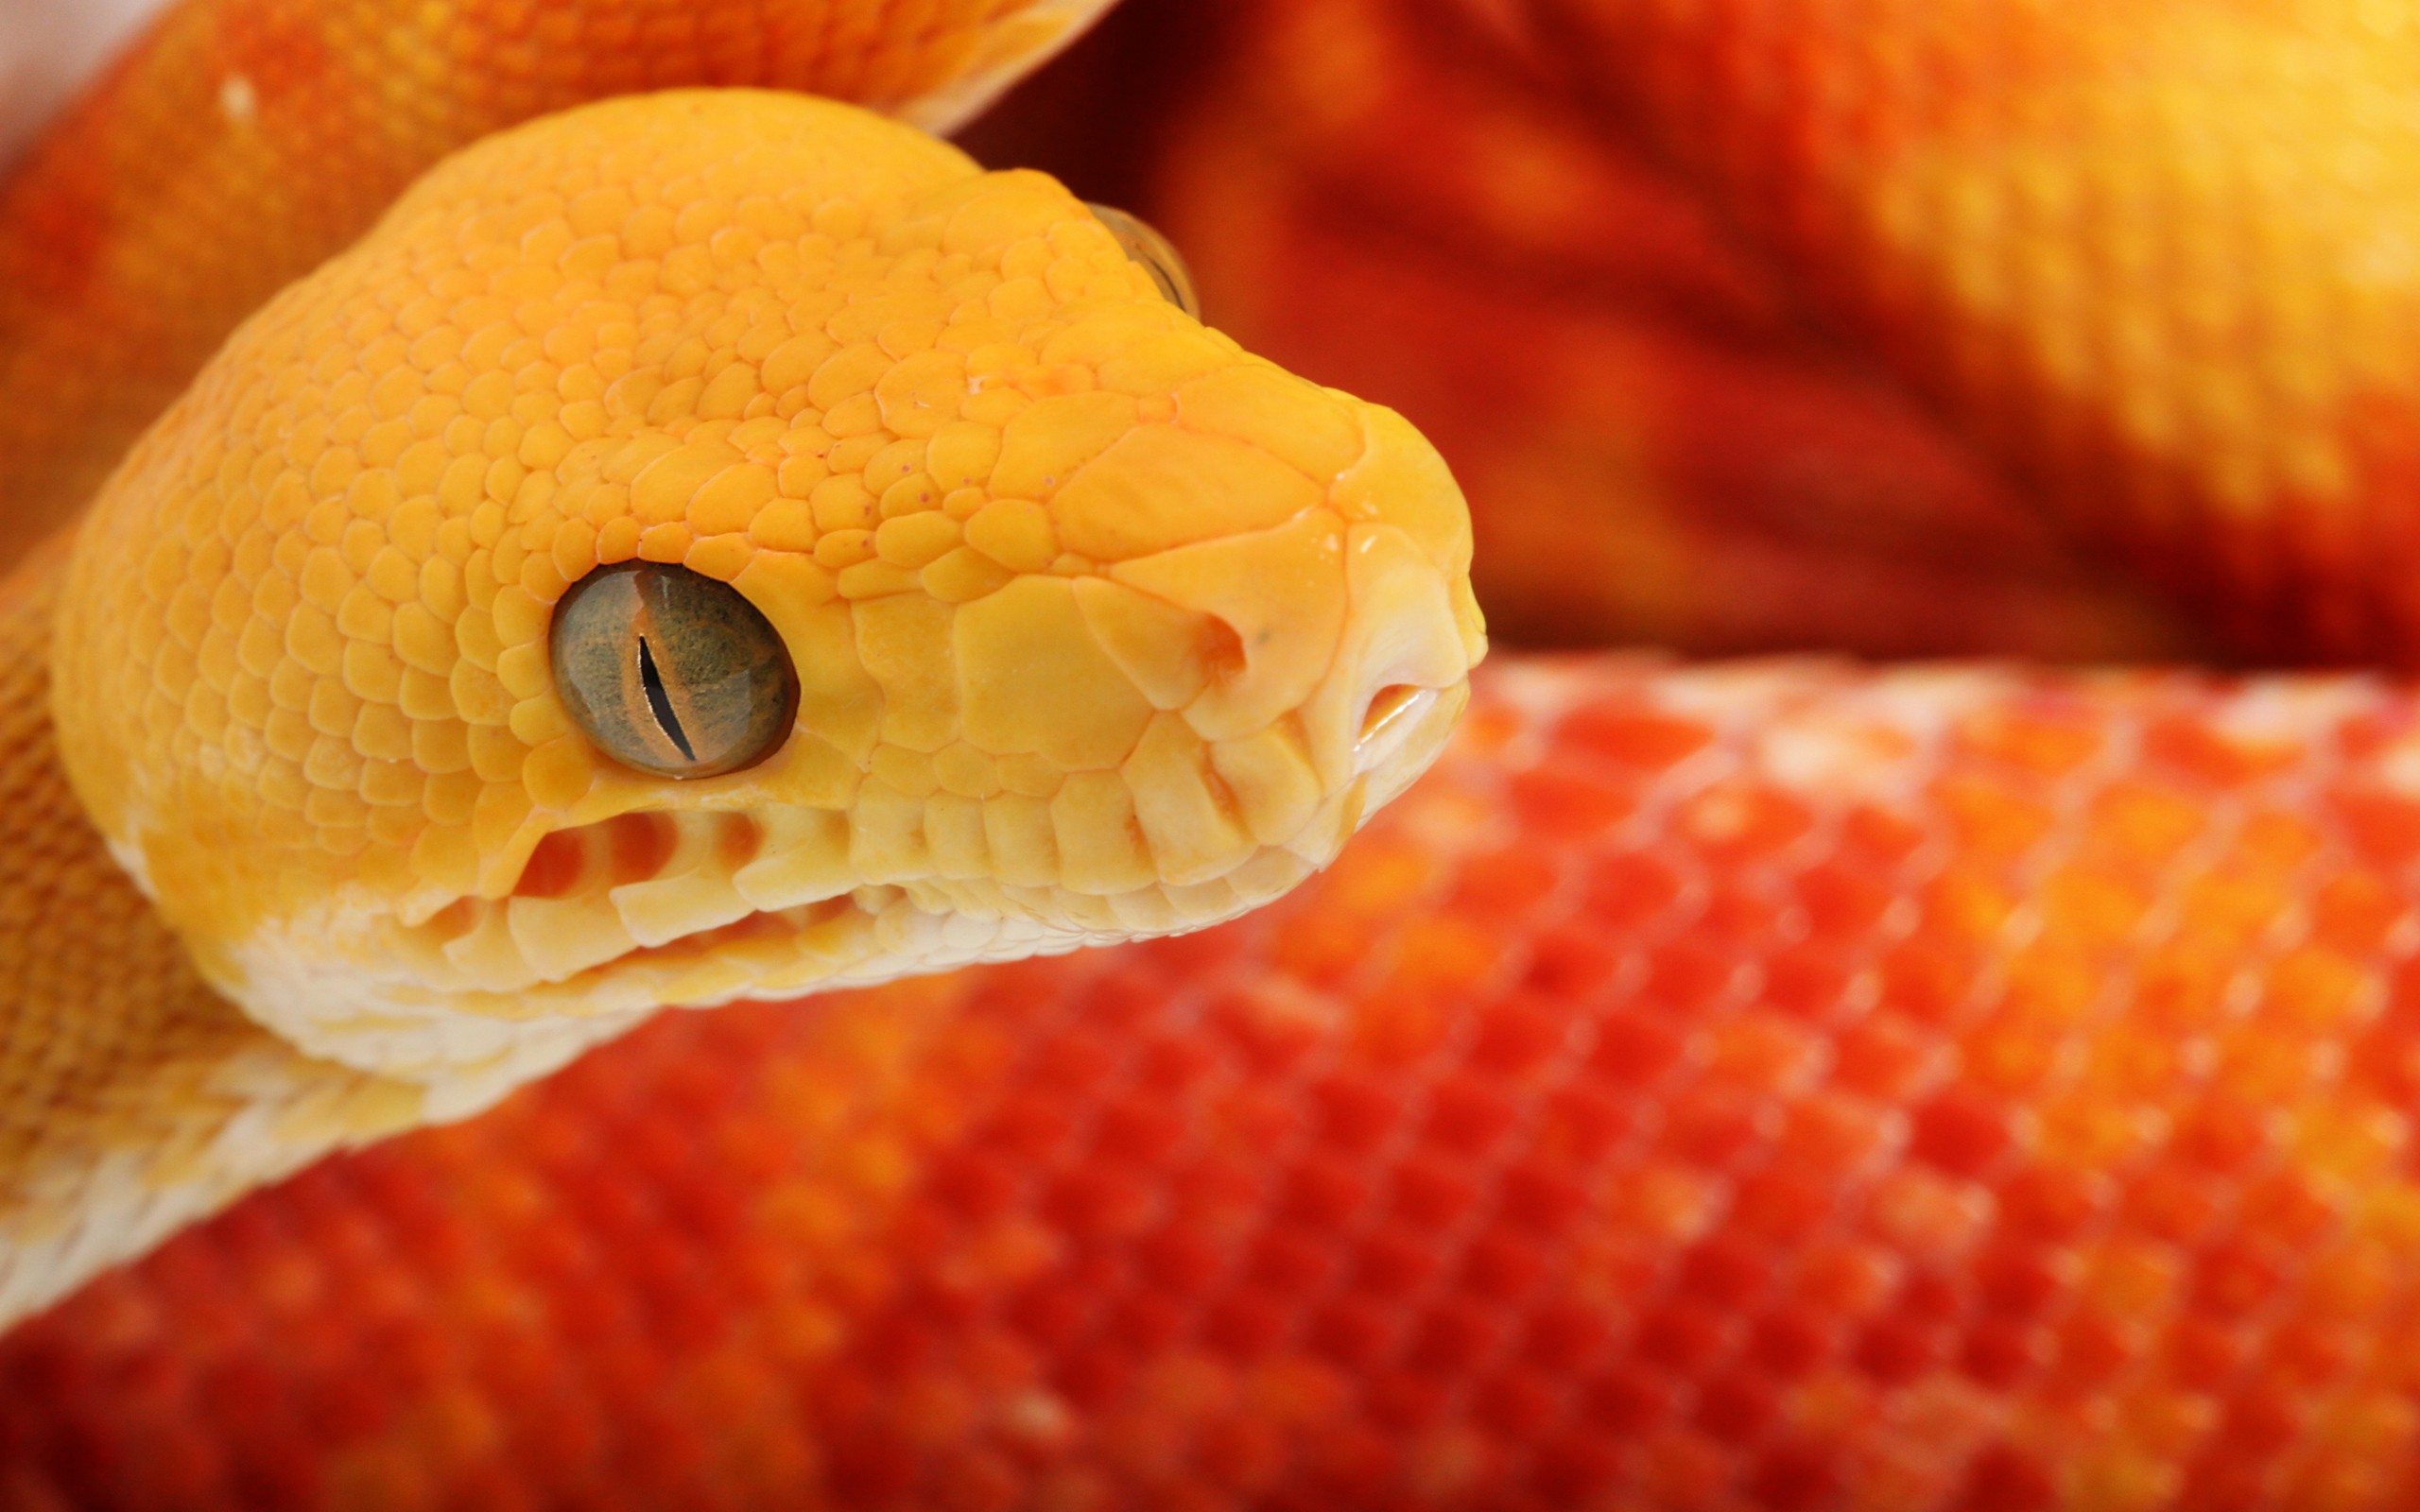 20 excellent hd snake wallpapers